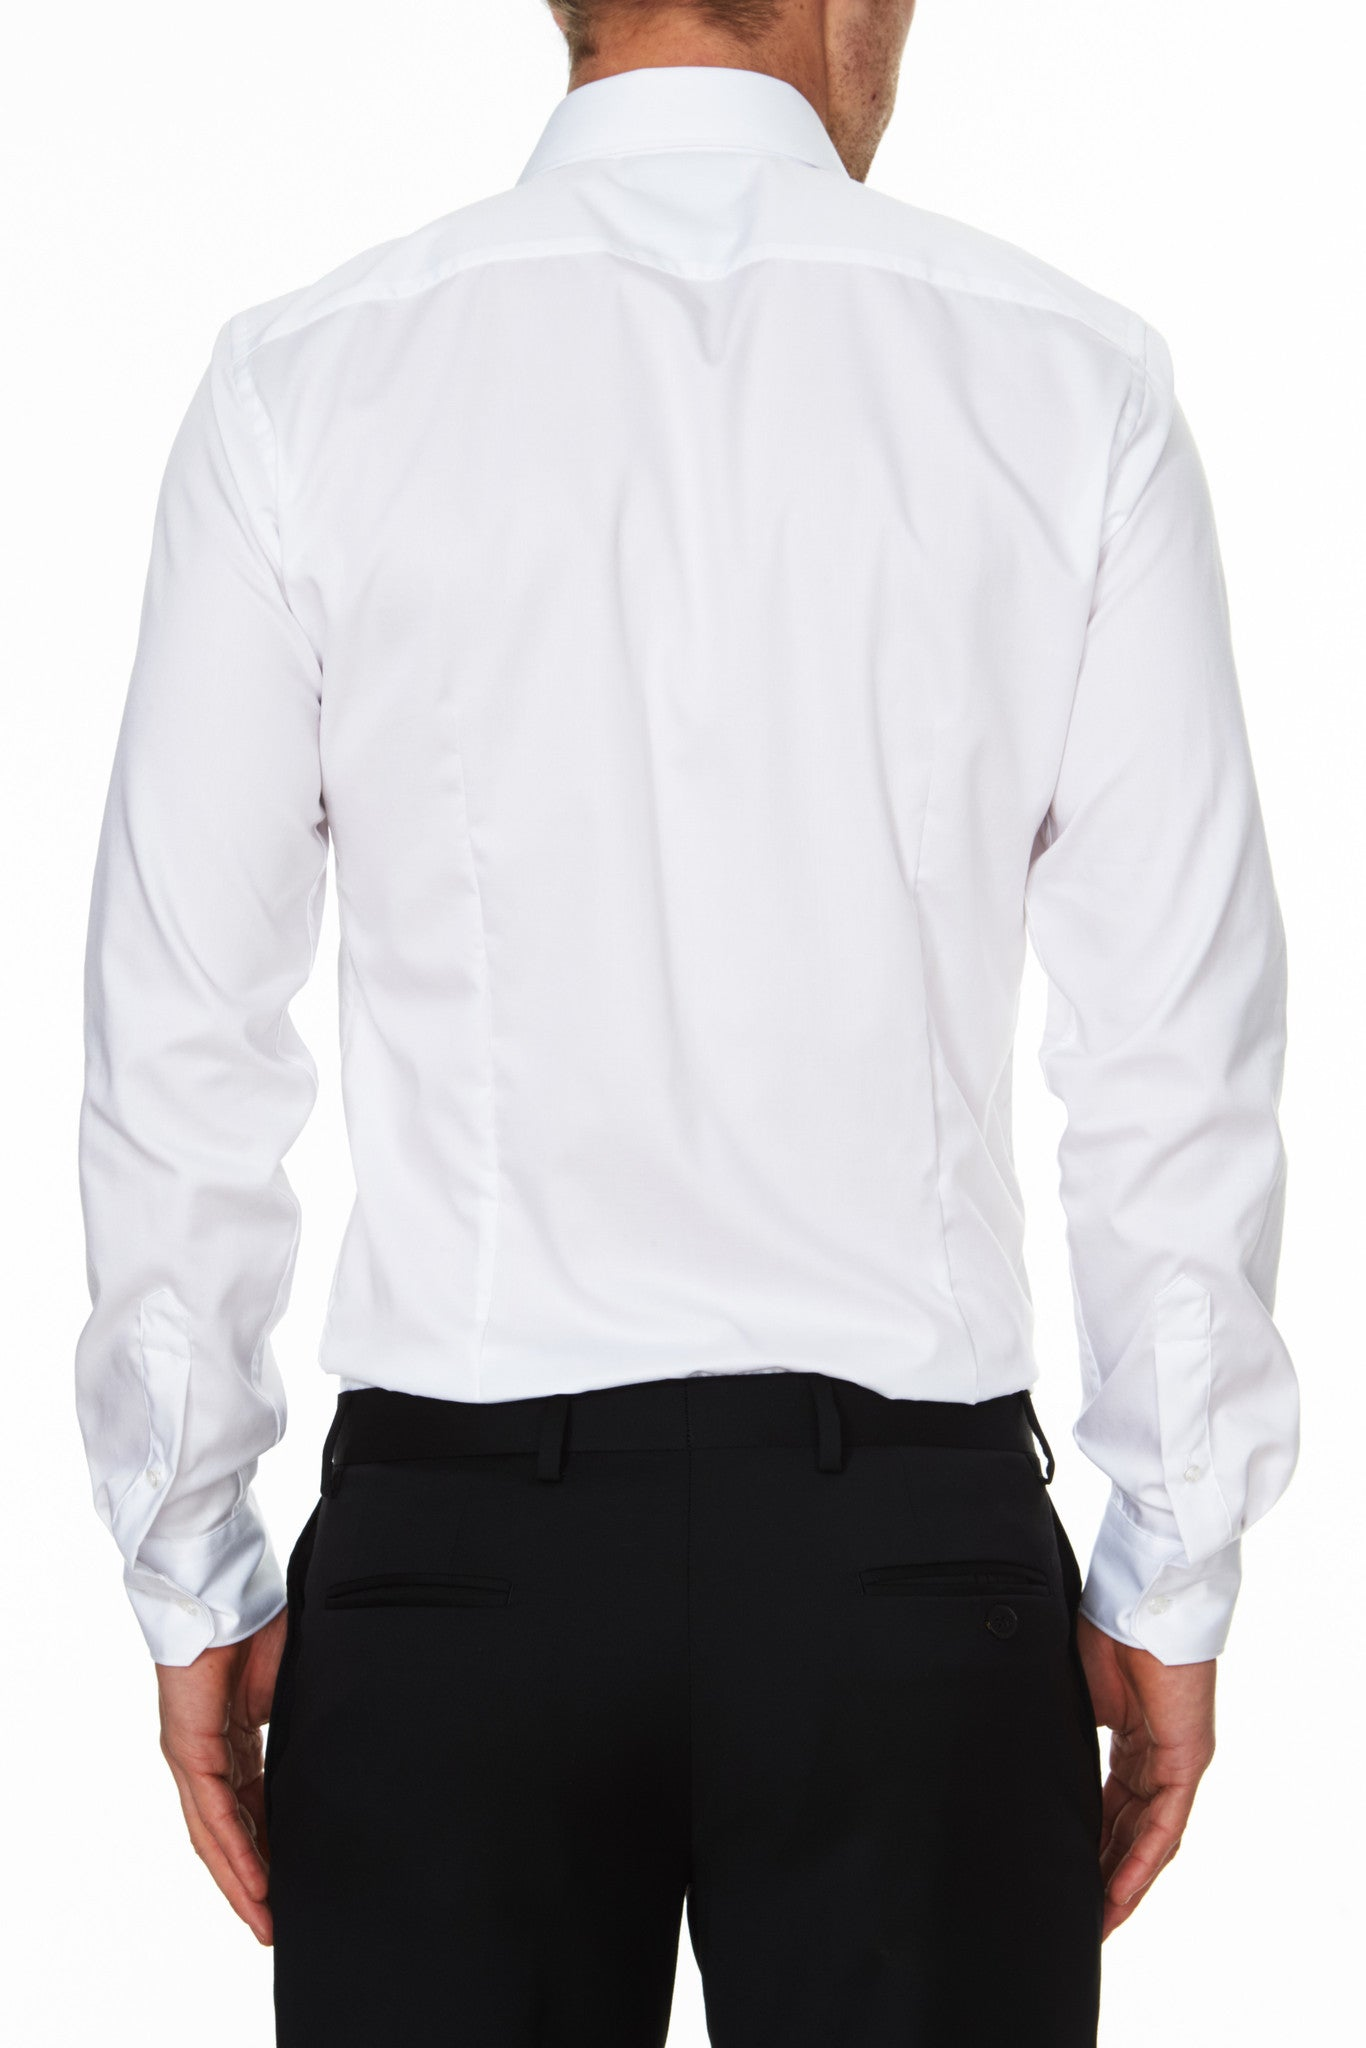 Pioneer Business Shirt White Back